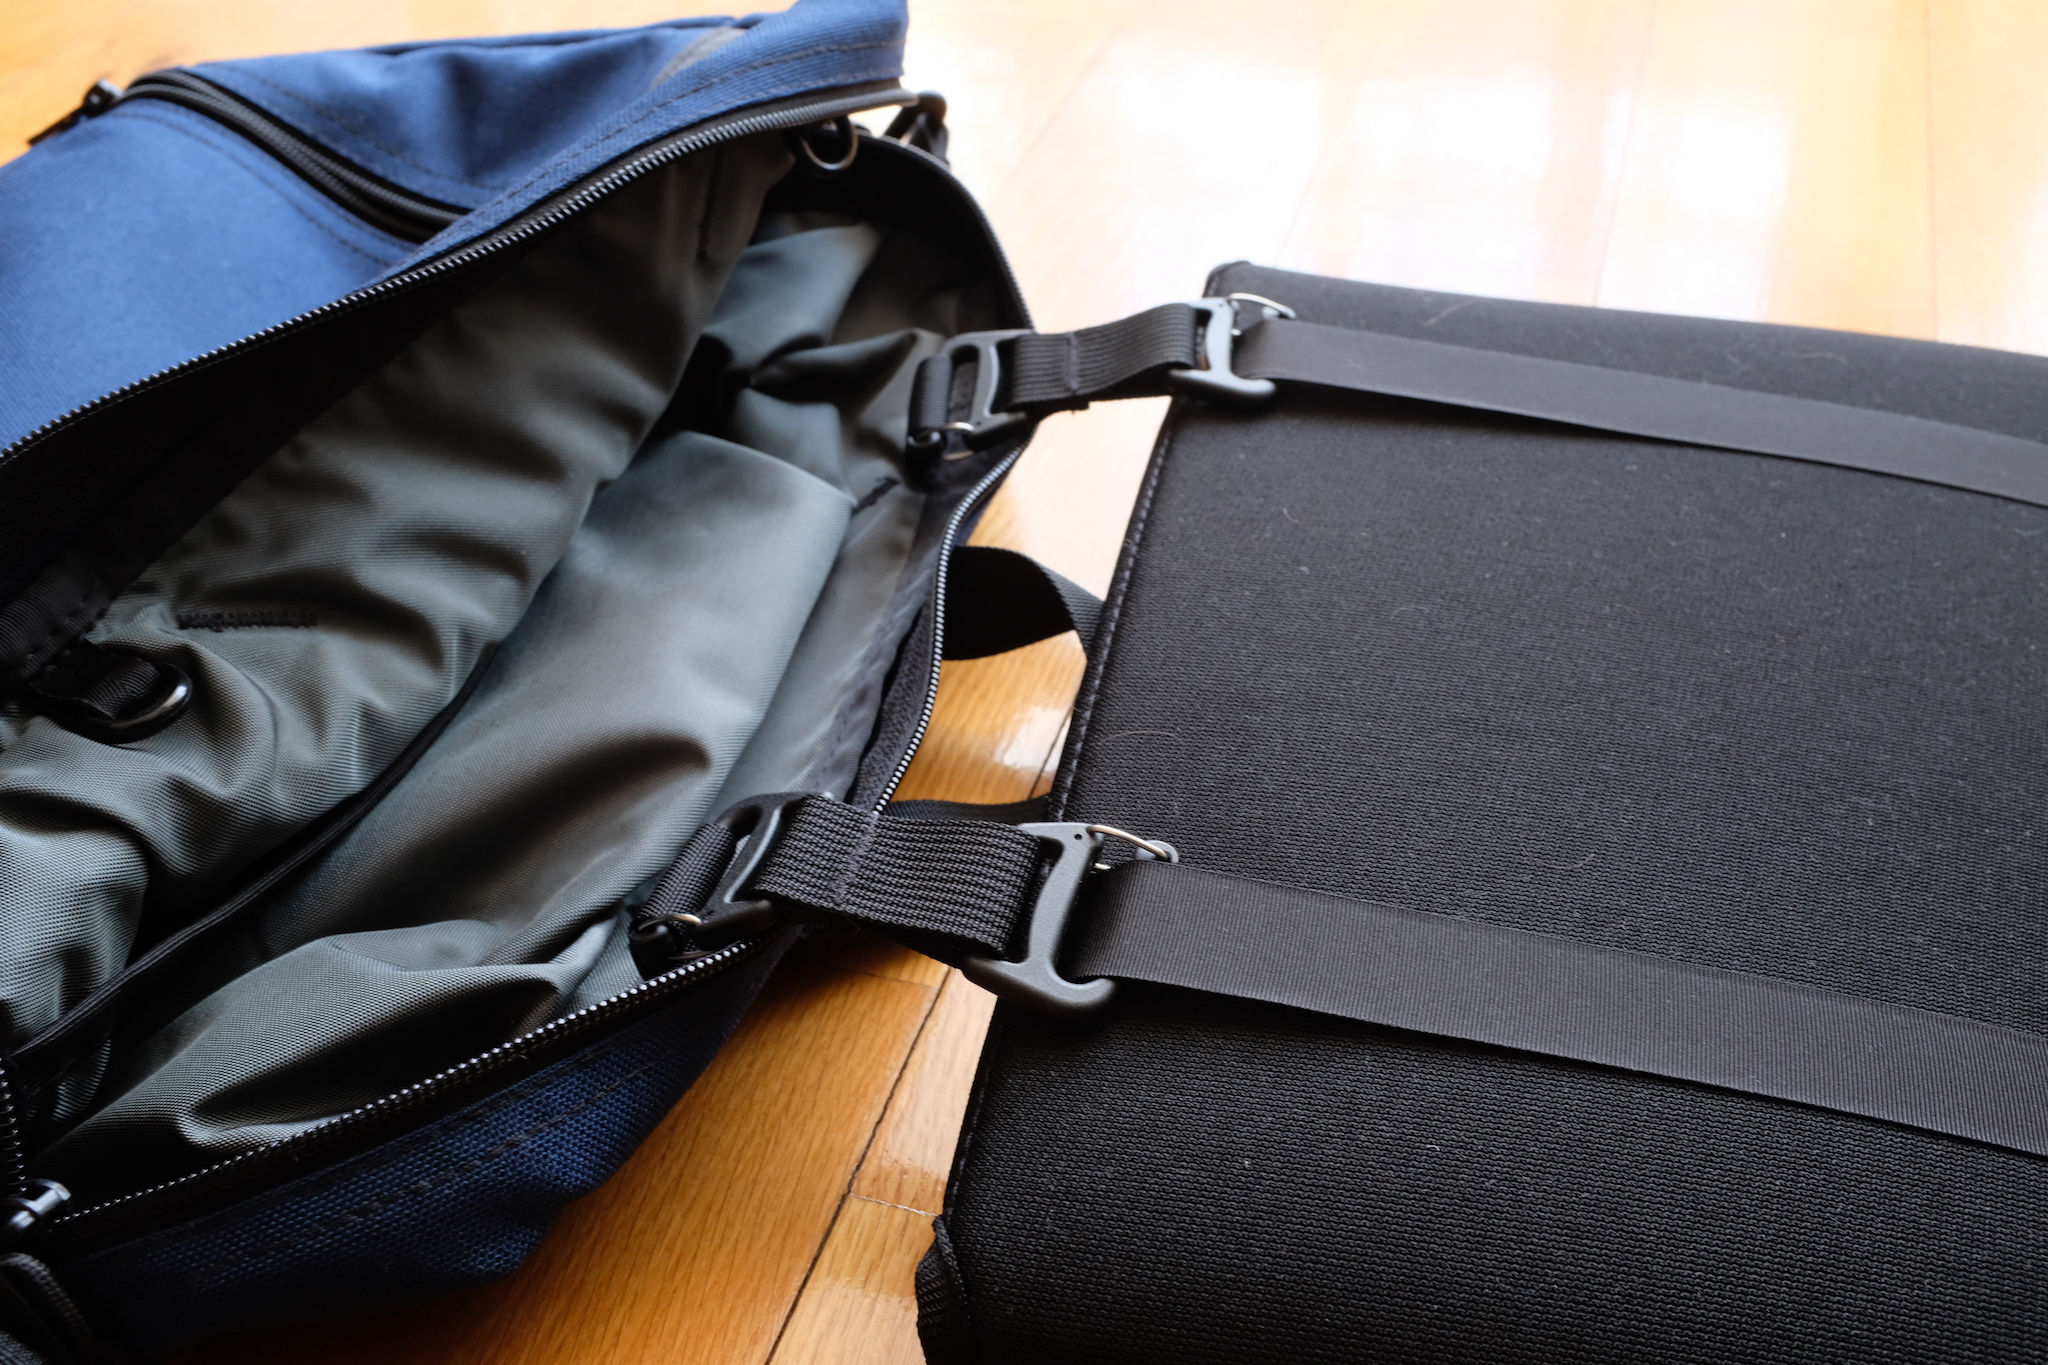 Two webbings holds the laptop sleeve and converts it into a TSA checkpoint friendly bag